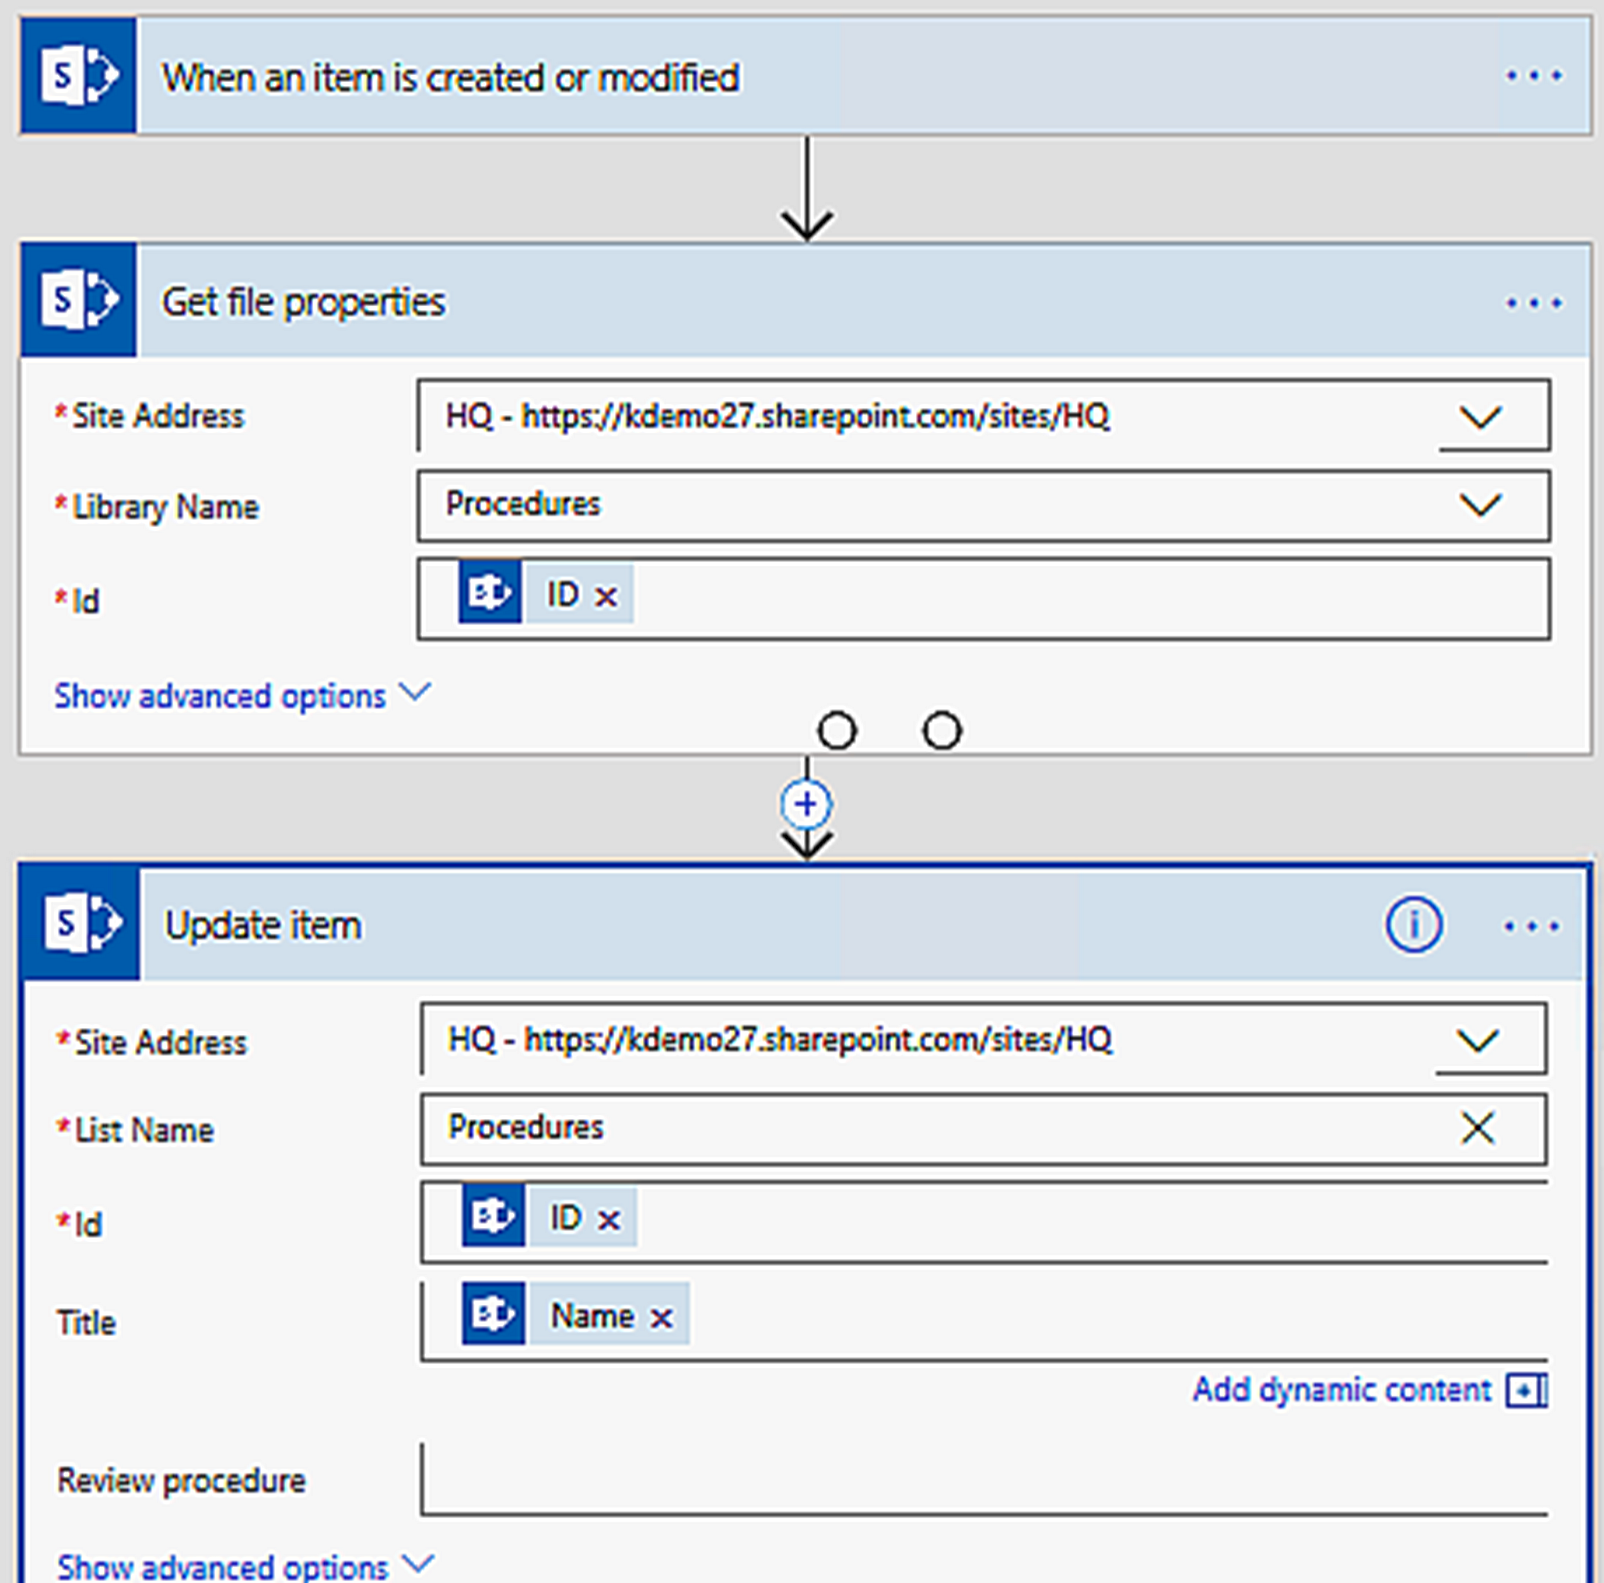 Microsoft flow to set title in SharePoint library